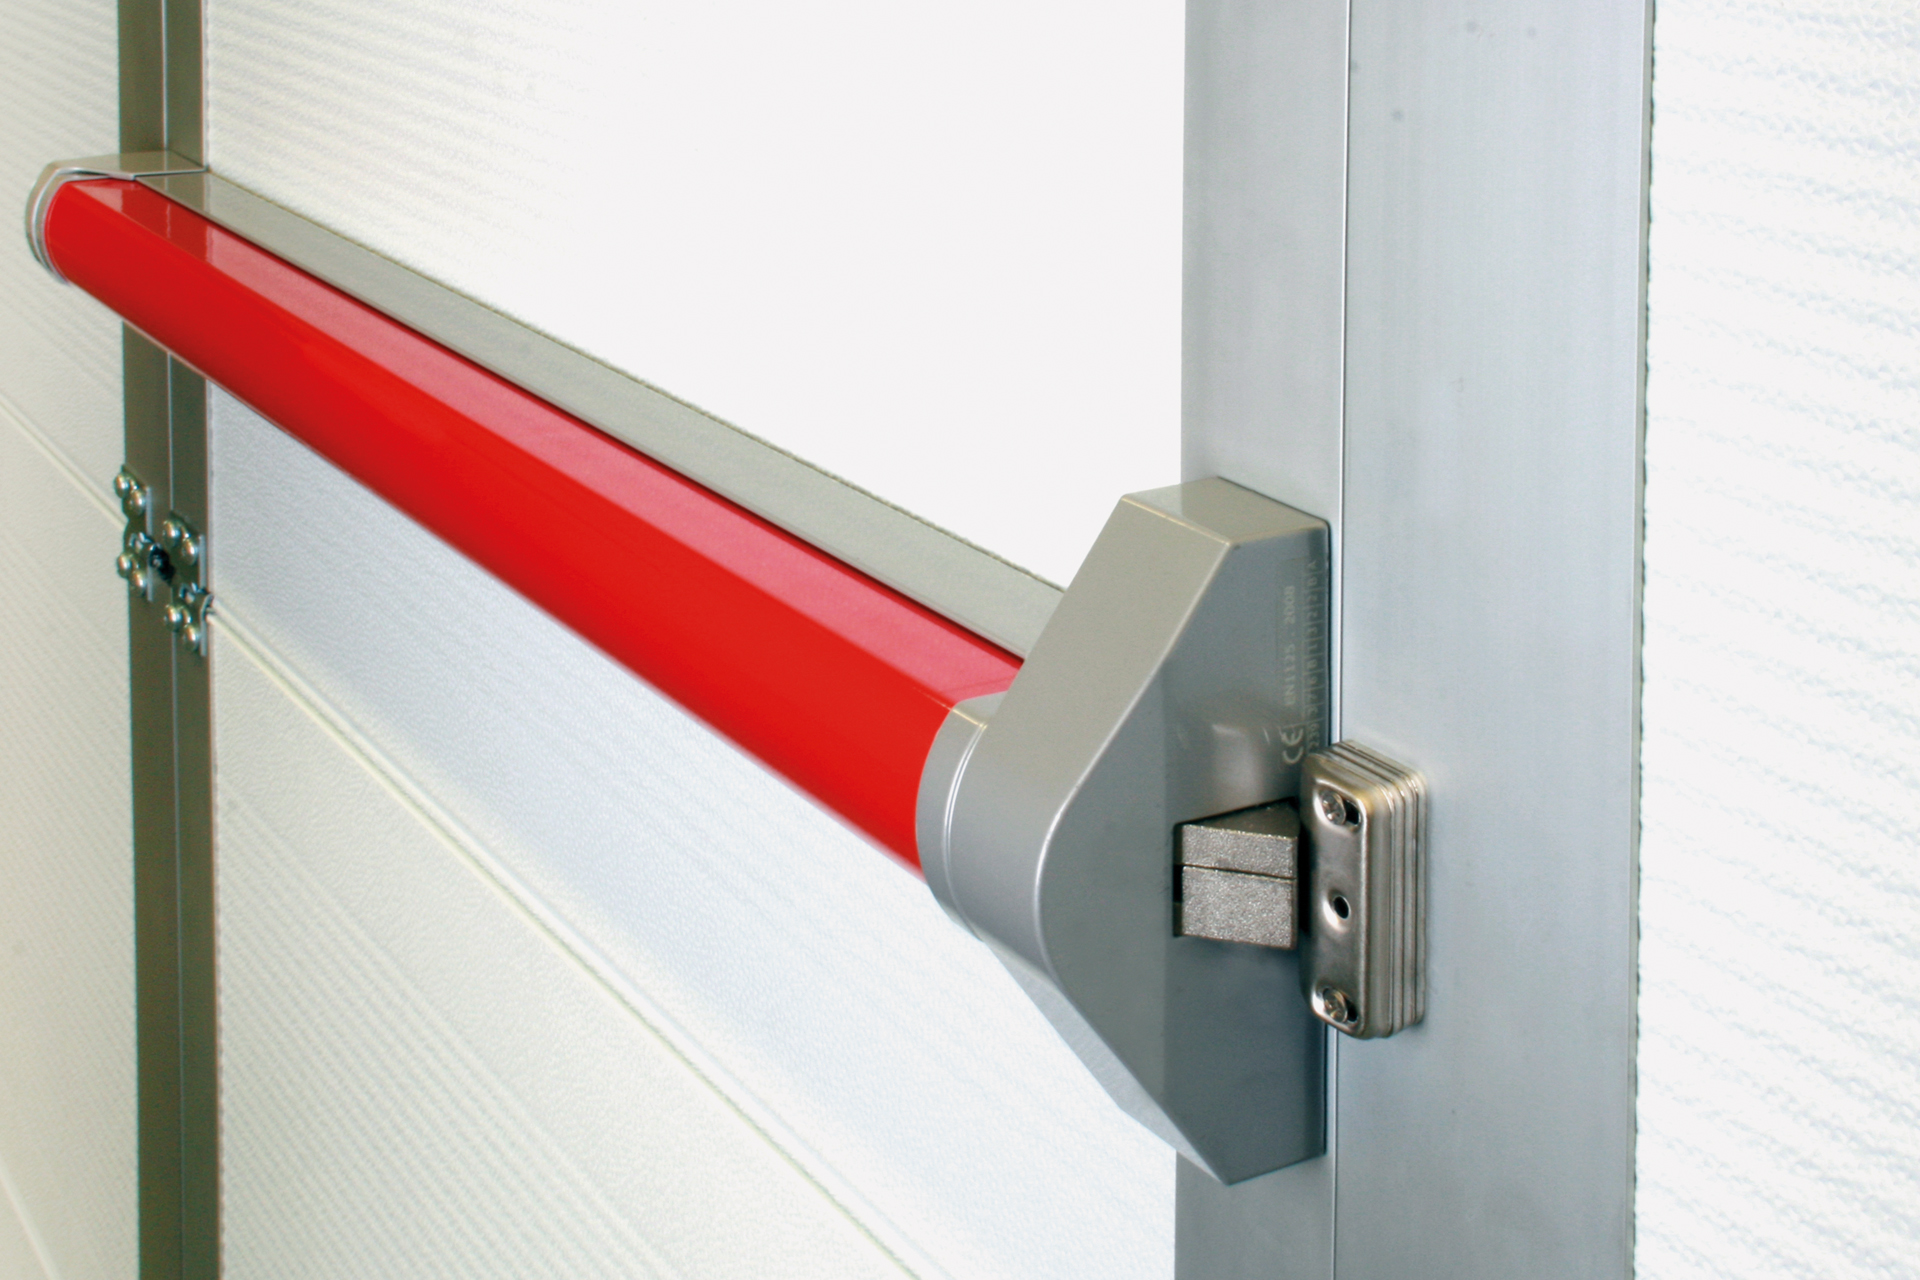 A full range of accessories like a panic bar door closers and safety switches complete the SAFESTEP offer. & Safestep pass door systems - FlexiForce